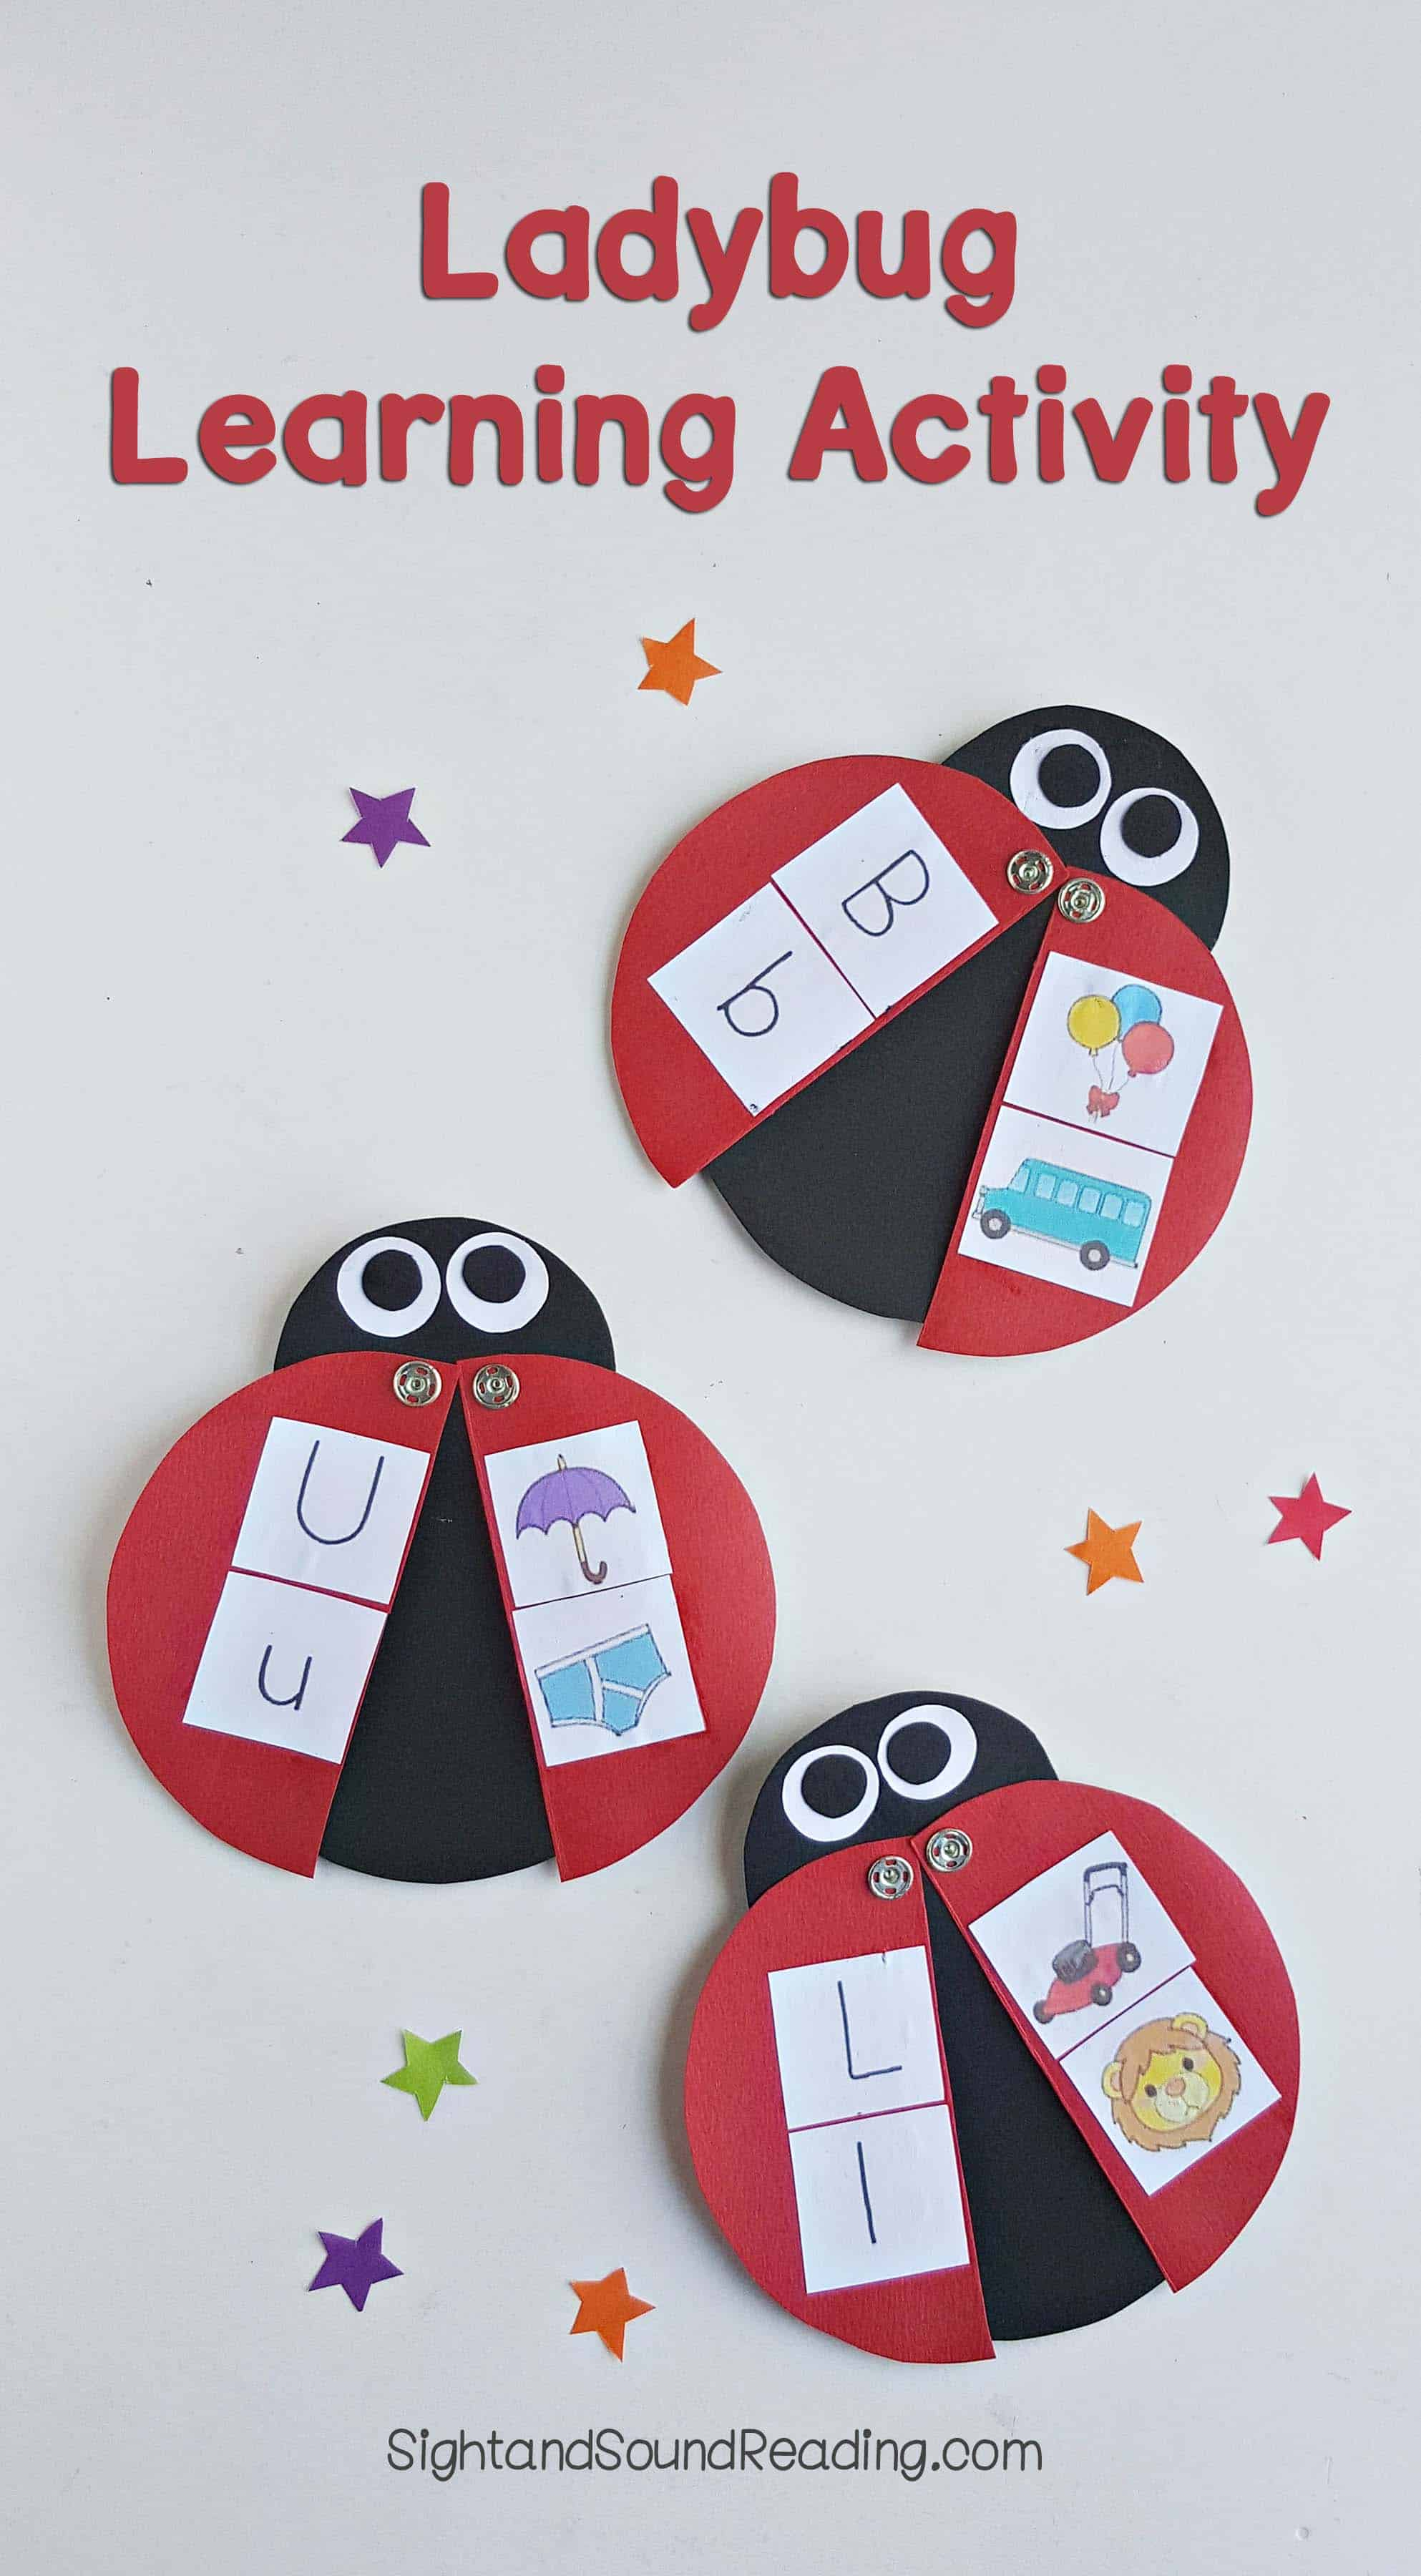 Today I am going to share ladybug learning activity tools for kids to get more familiar with some facts they learn. The example pictures here show some upper and lower case letters for children to memorize. You can use other facts, such as multiplication and addition as well.